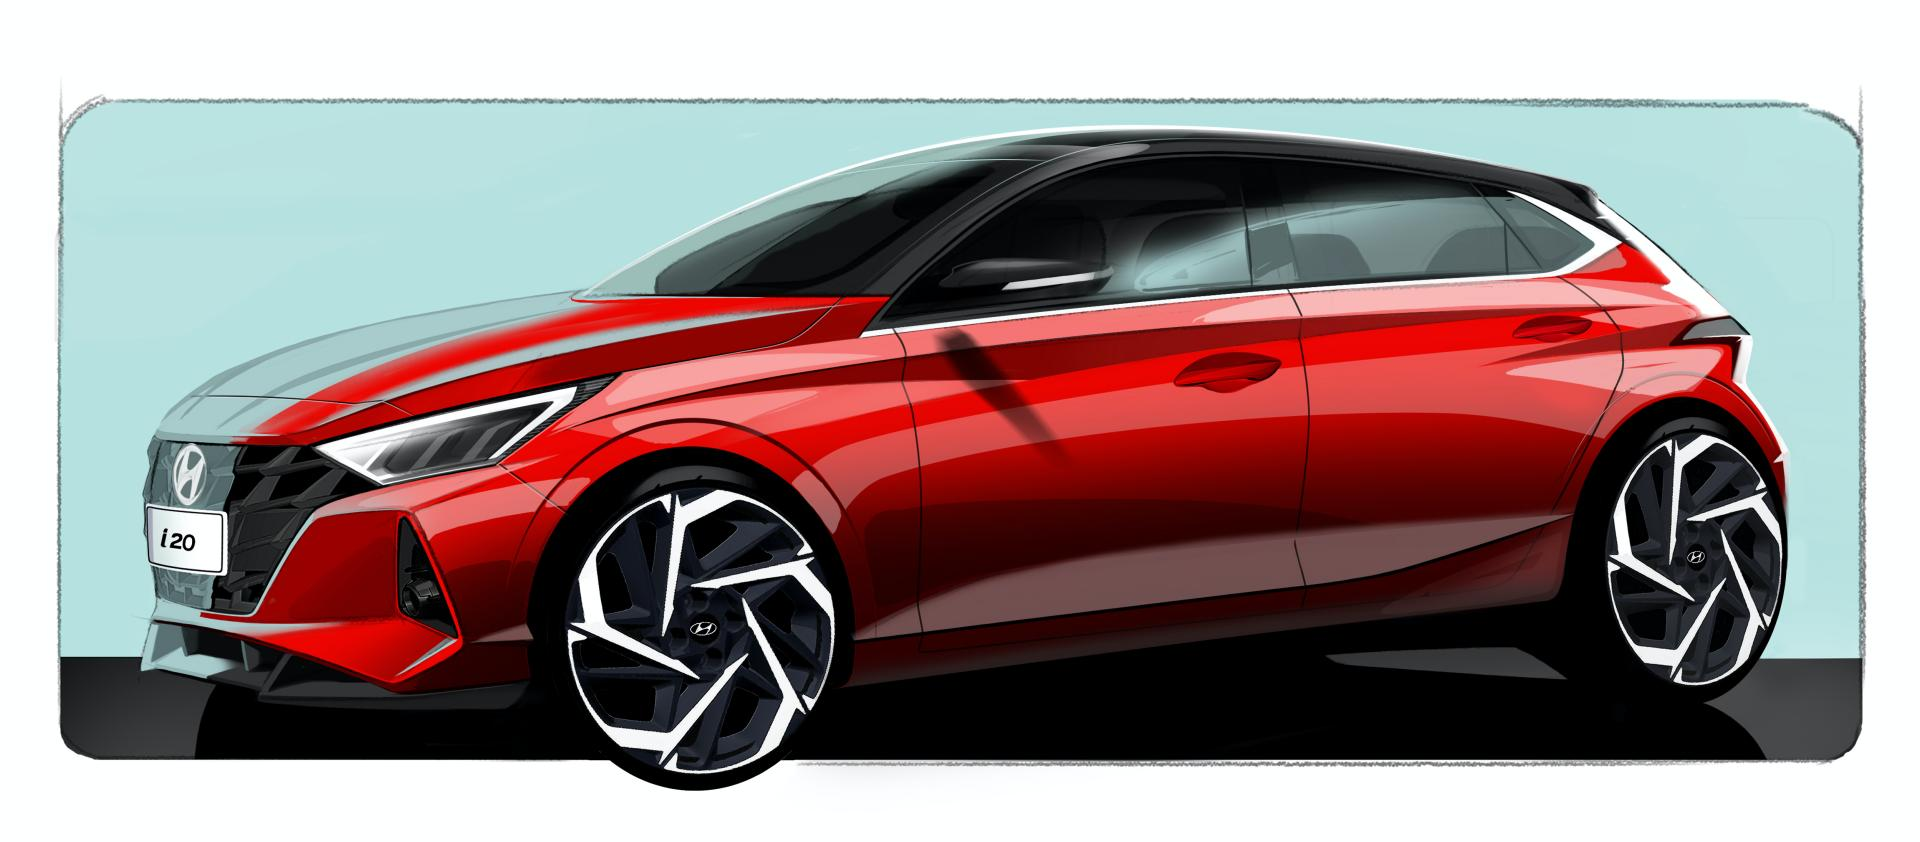 2020-Hyundai-i20-official-design-sketches-1